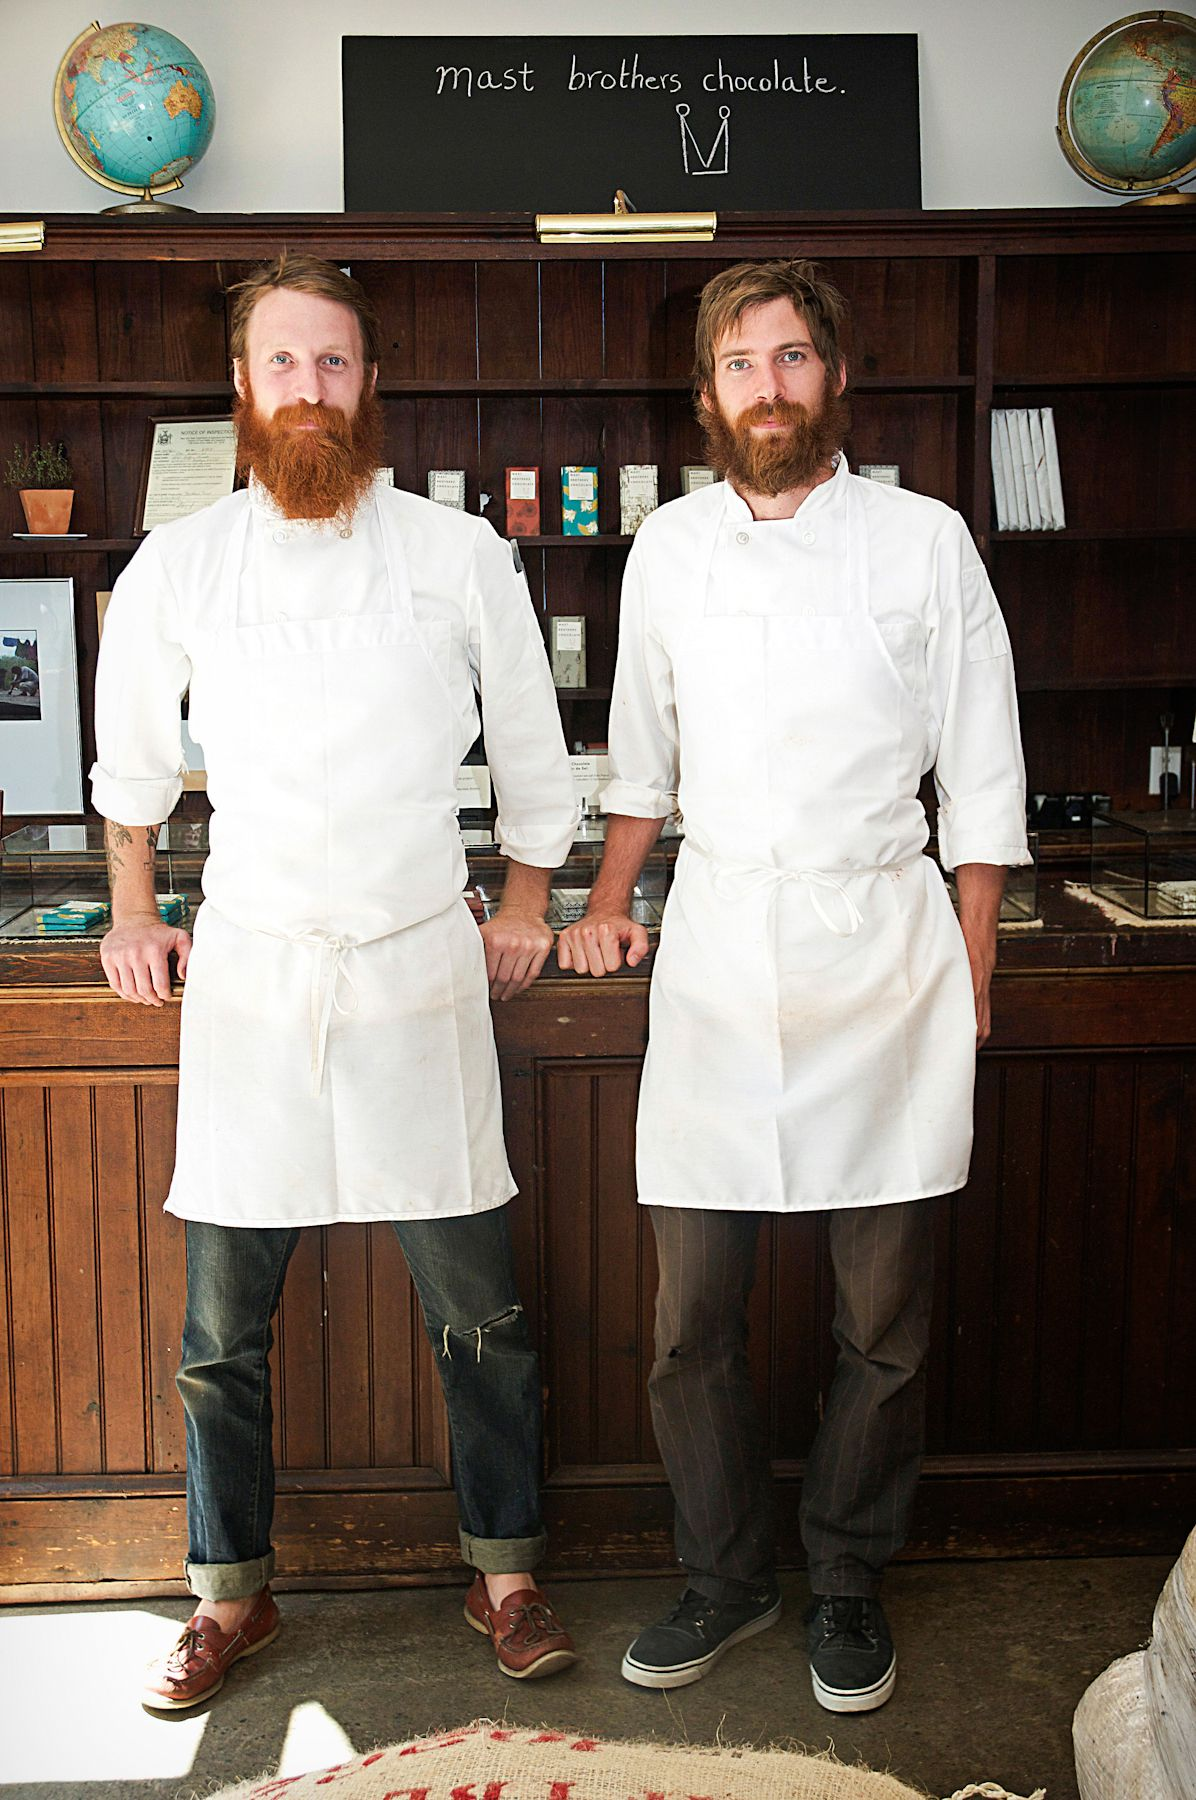 The Mast Brothers Three To One A Visual Food Magazine Mast